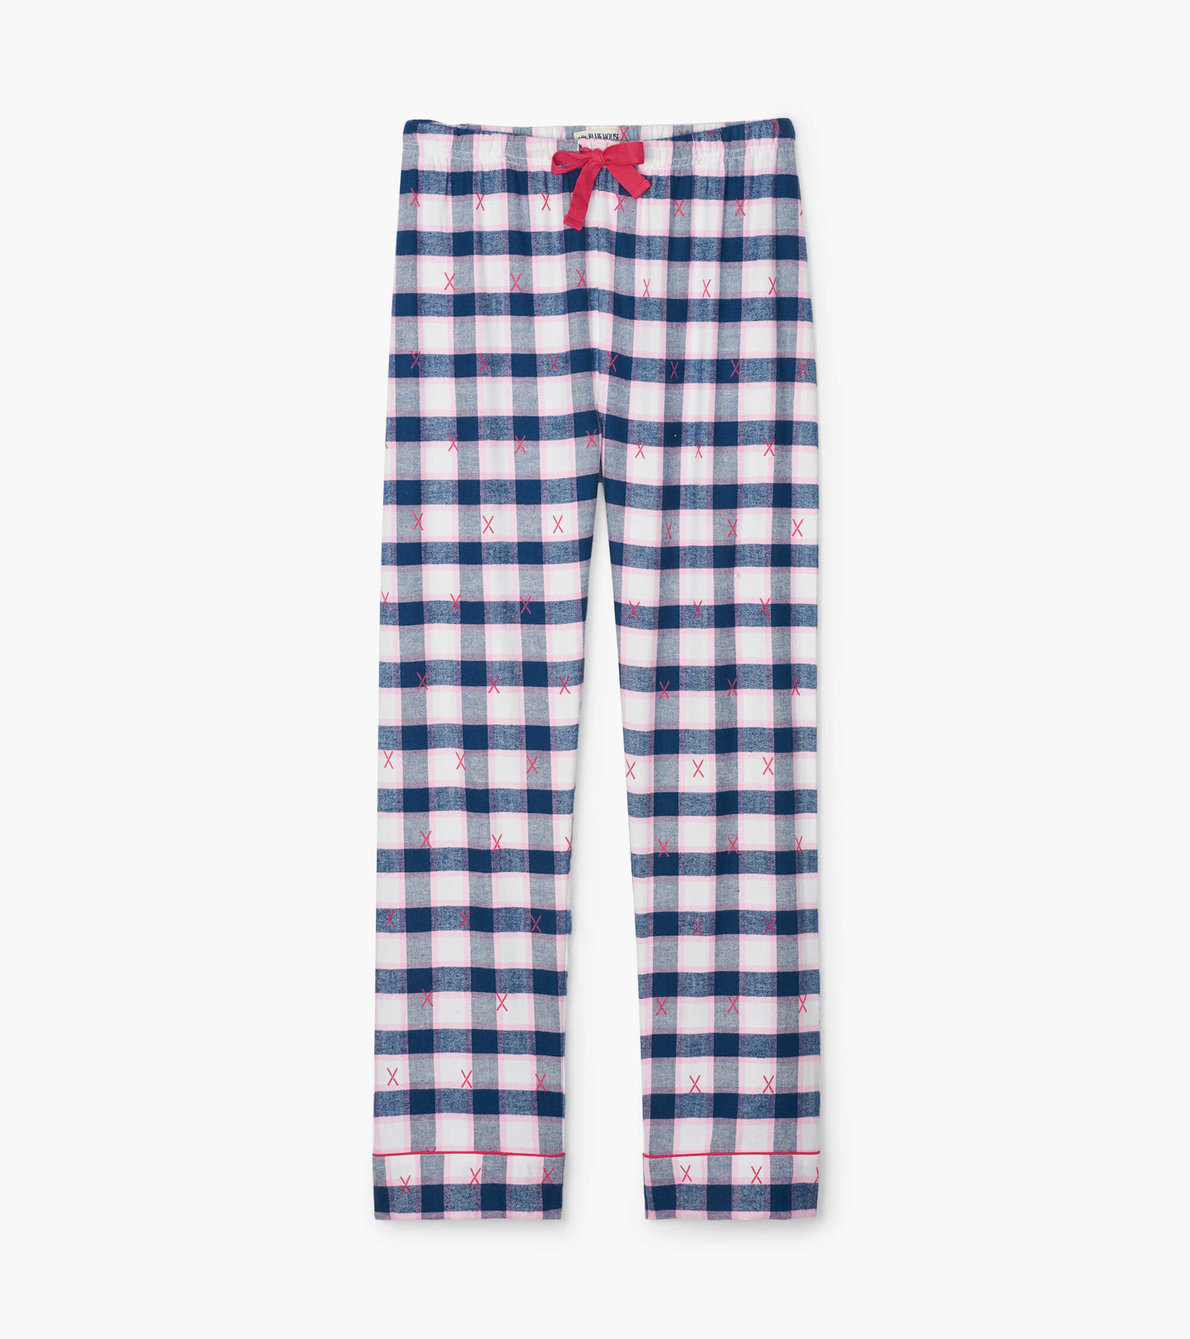 View larger image of Ski Holiday Plaid Women's Flannel Pajama Set